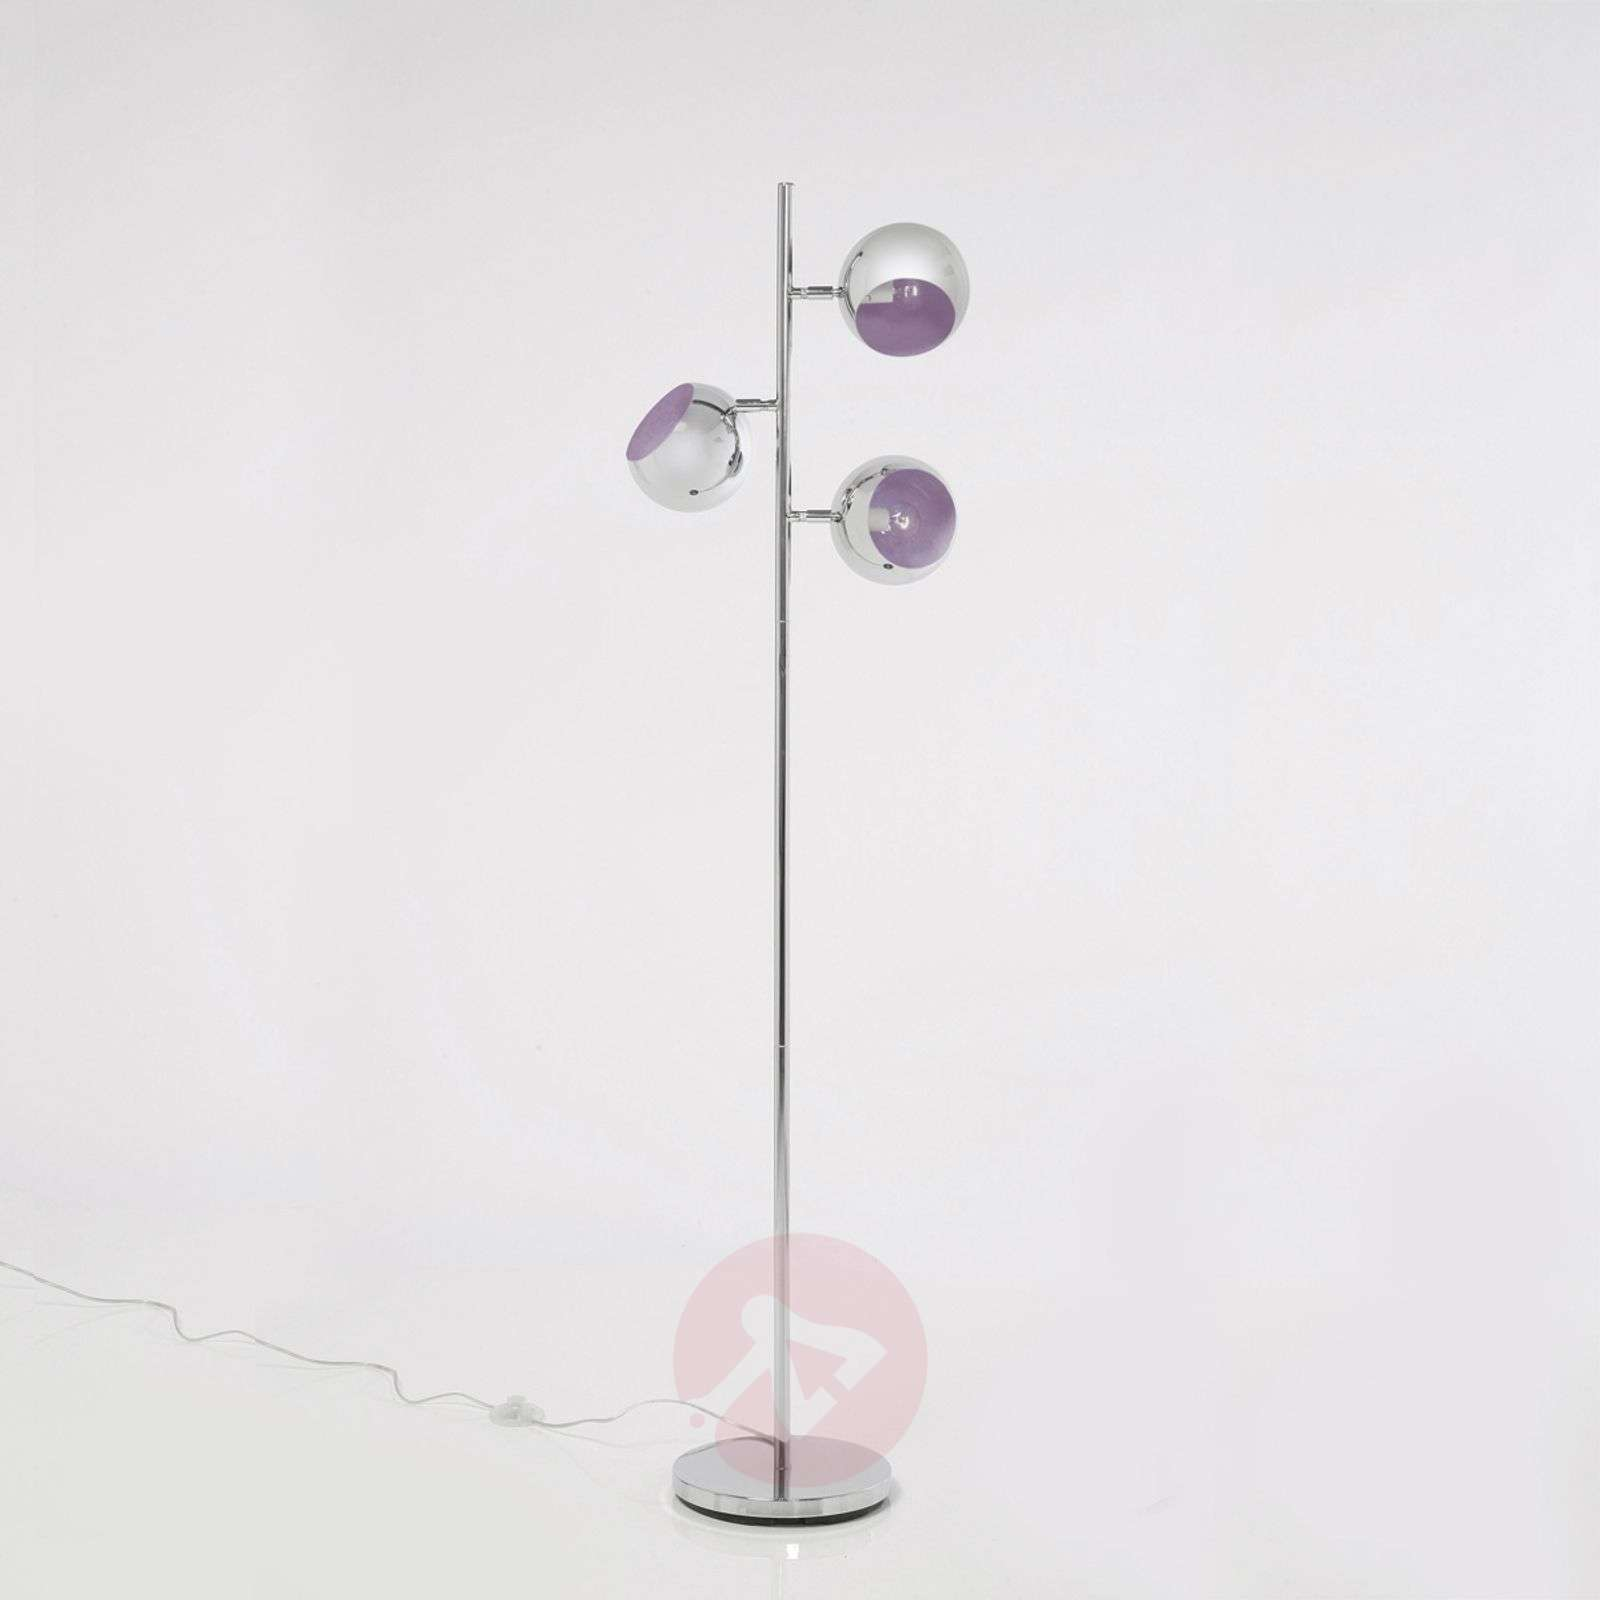 KARE Calotta three-bulb retro style floor lamp-5517030-01